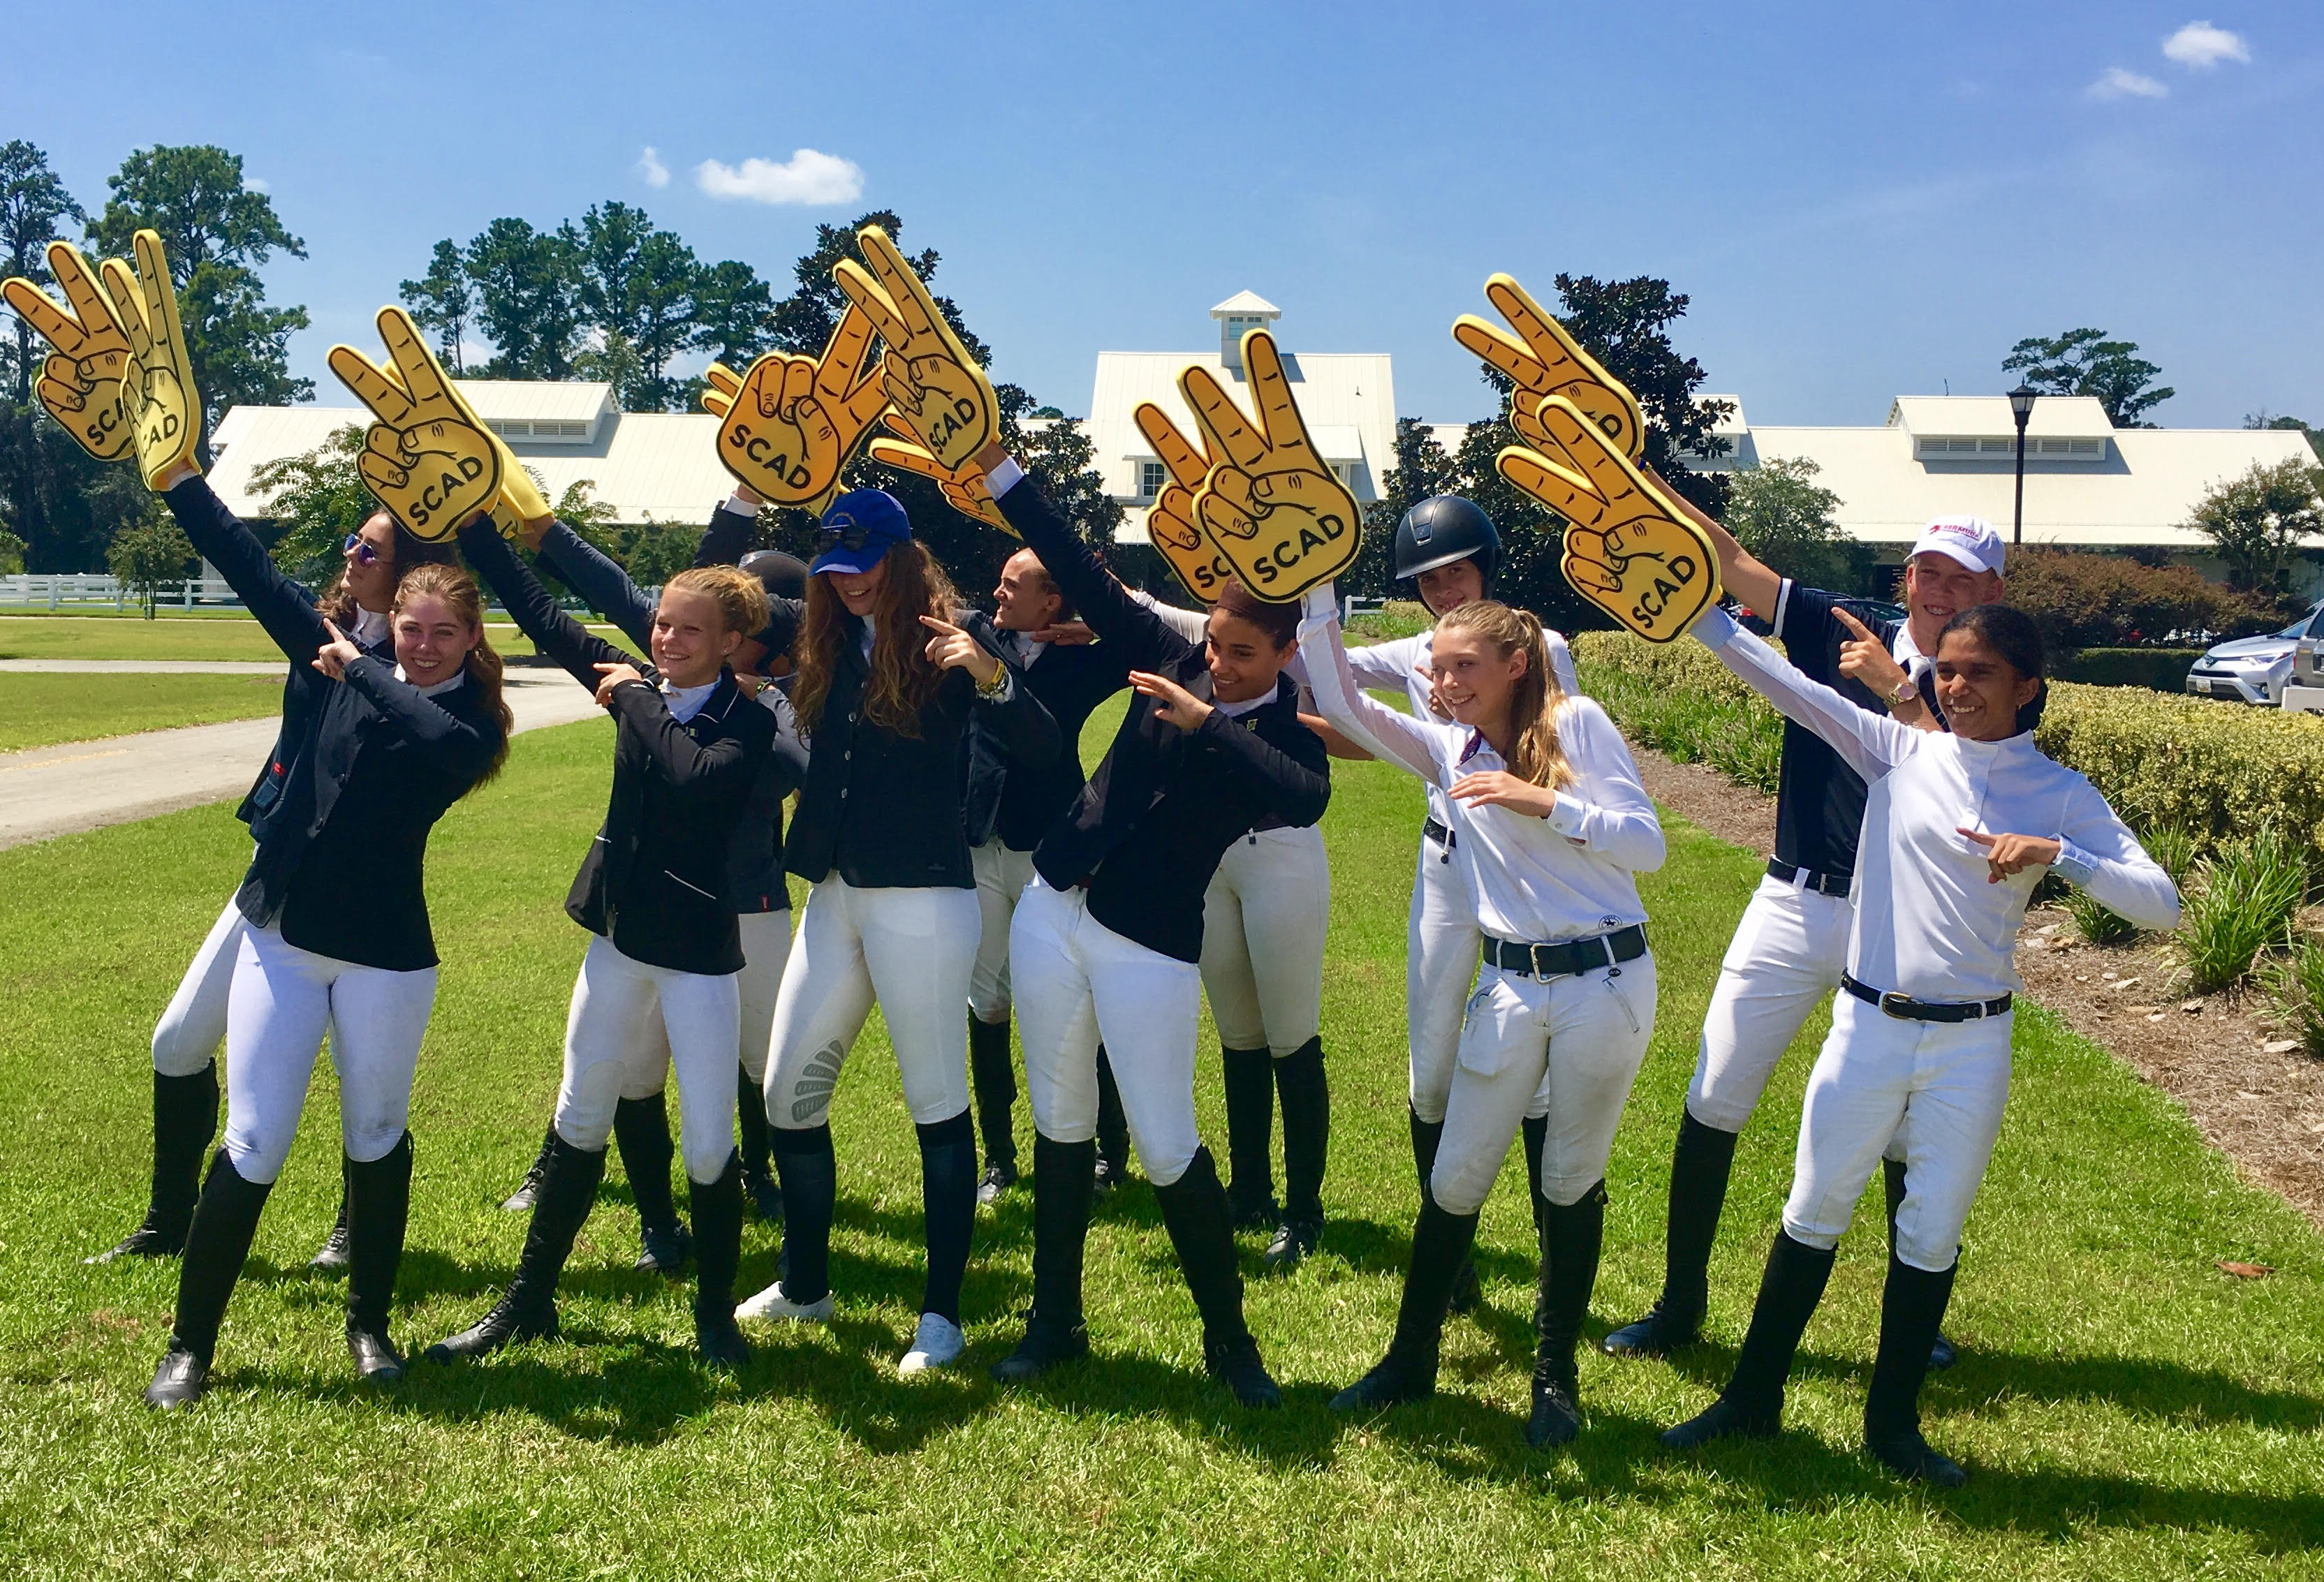 The competitors of the Caribbean Junior Jumping Challenge showed their enthusiasm for their host. Photo courtesy of PAEC